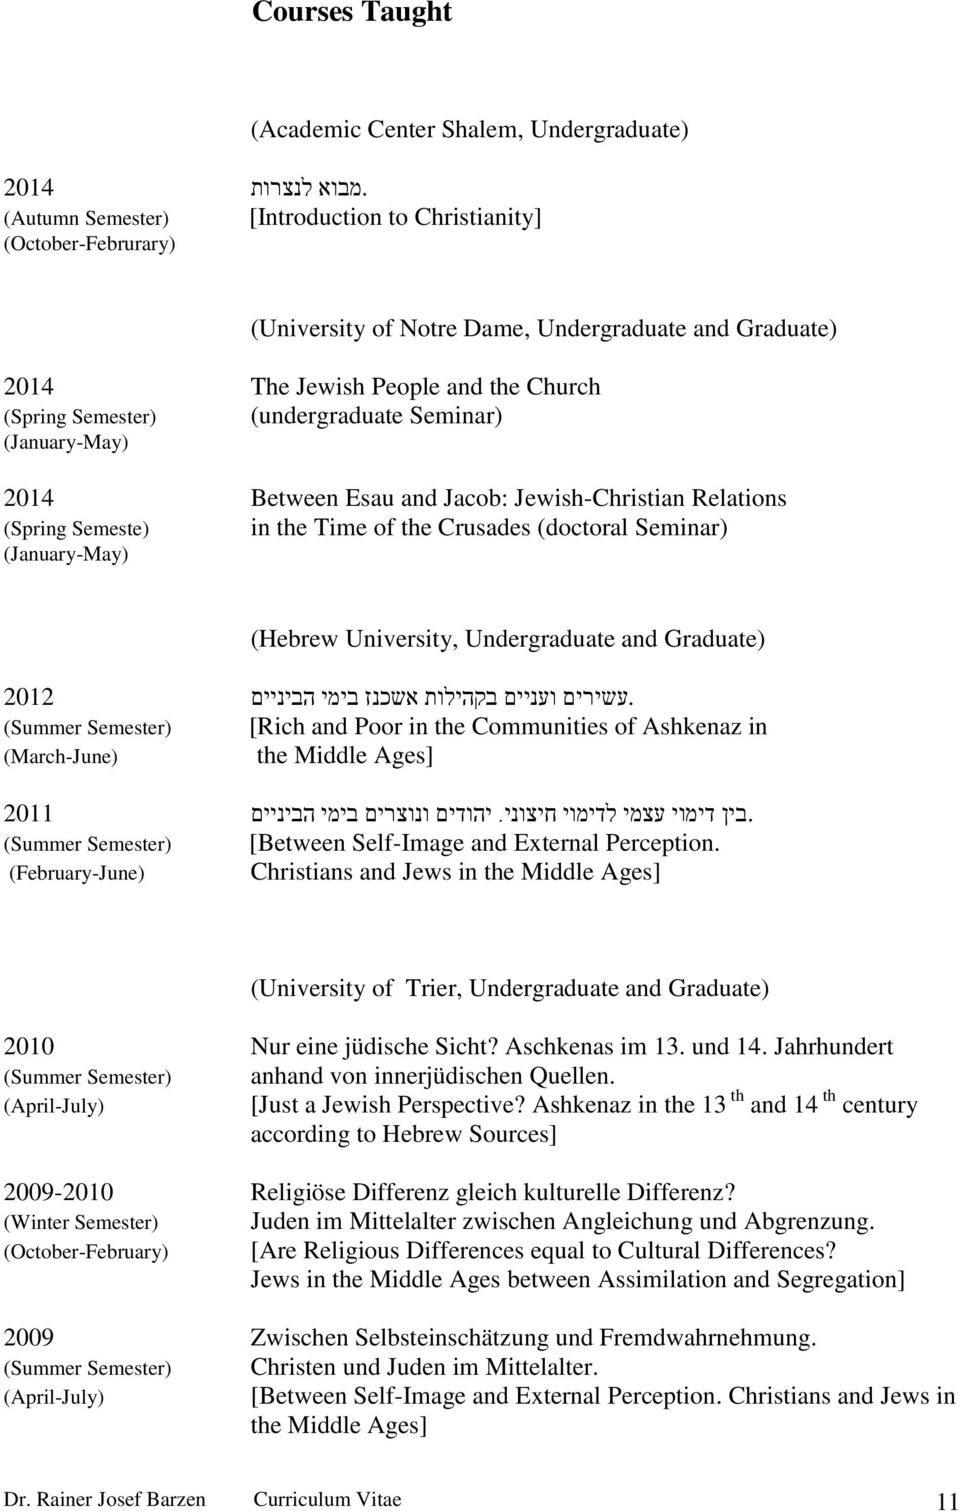 (undergraduate Seminar) (January-May) 2014 Between Esau and Jacob: Jewish-Christian Relations (Spring Semeste) in the Time of the Crusades (doctoral Seminar) (January-May) (Hebrew University,